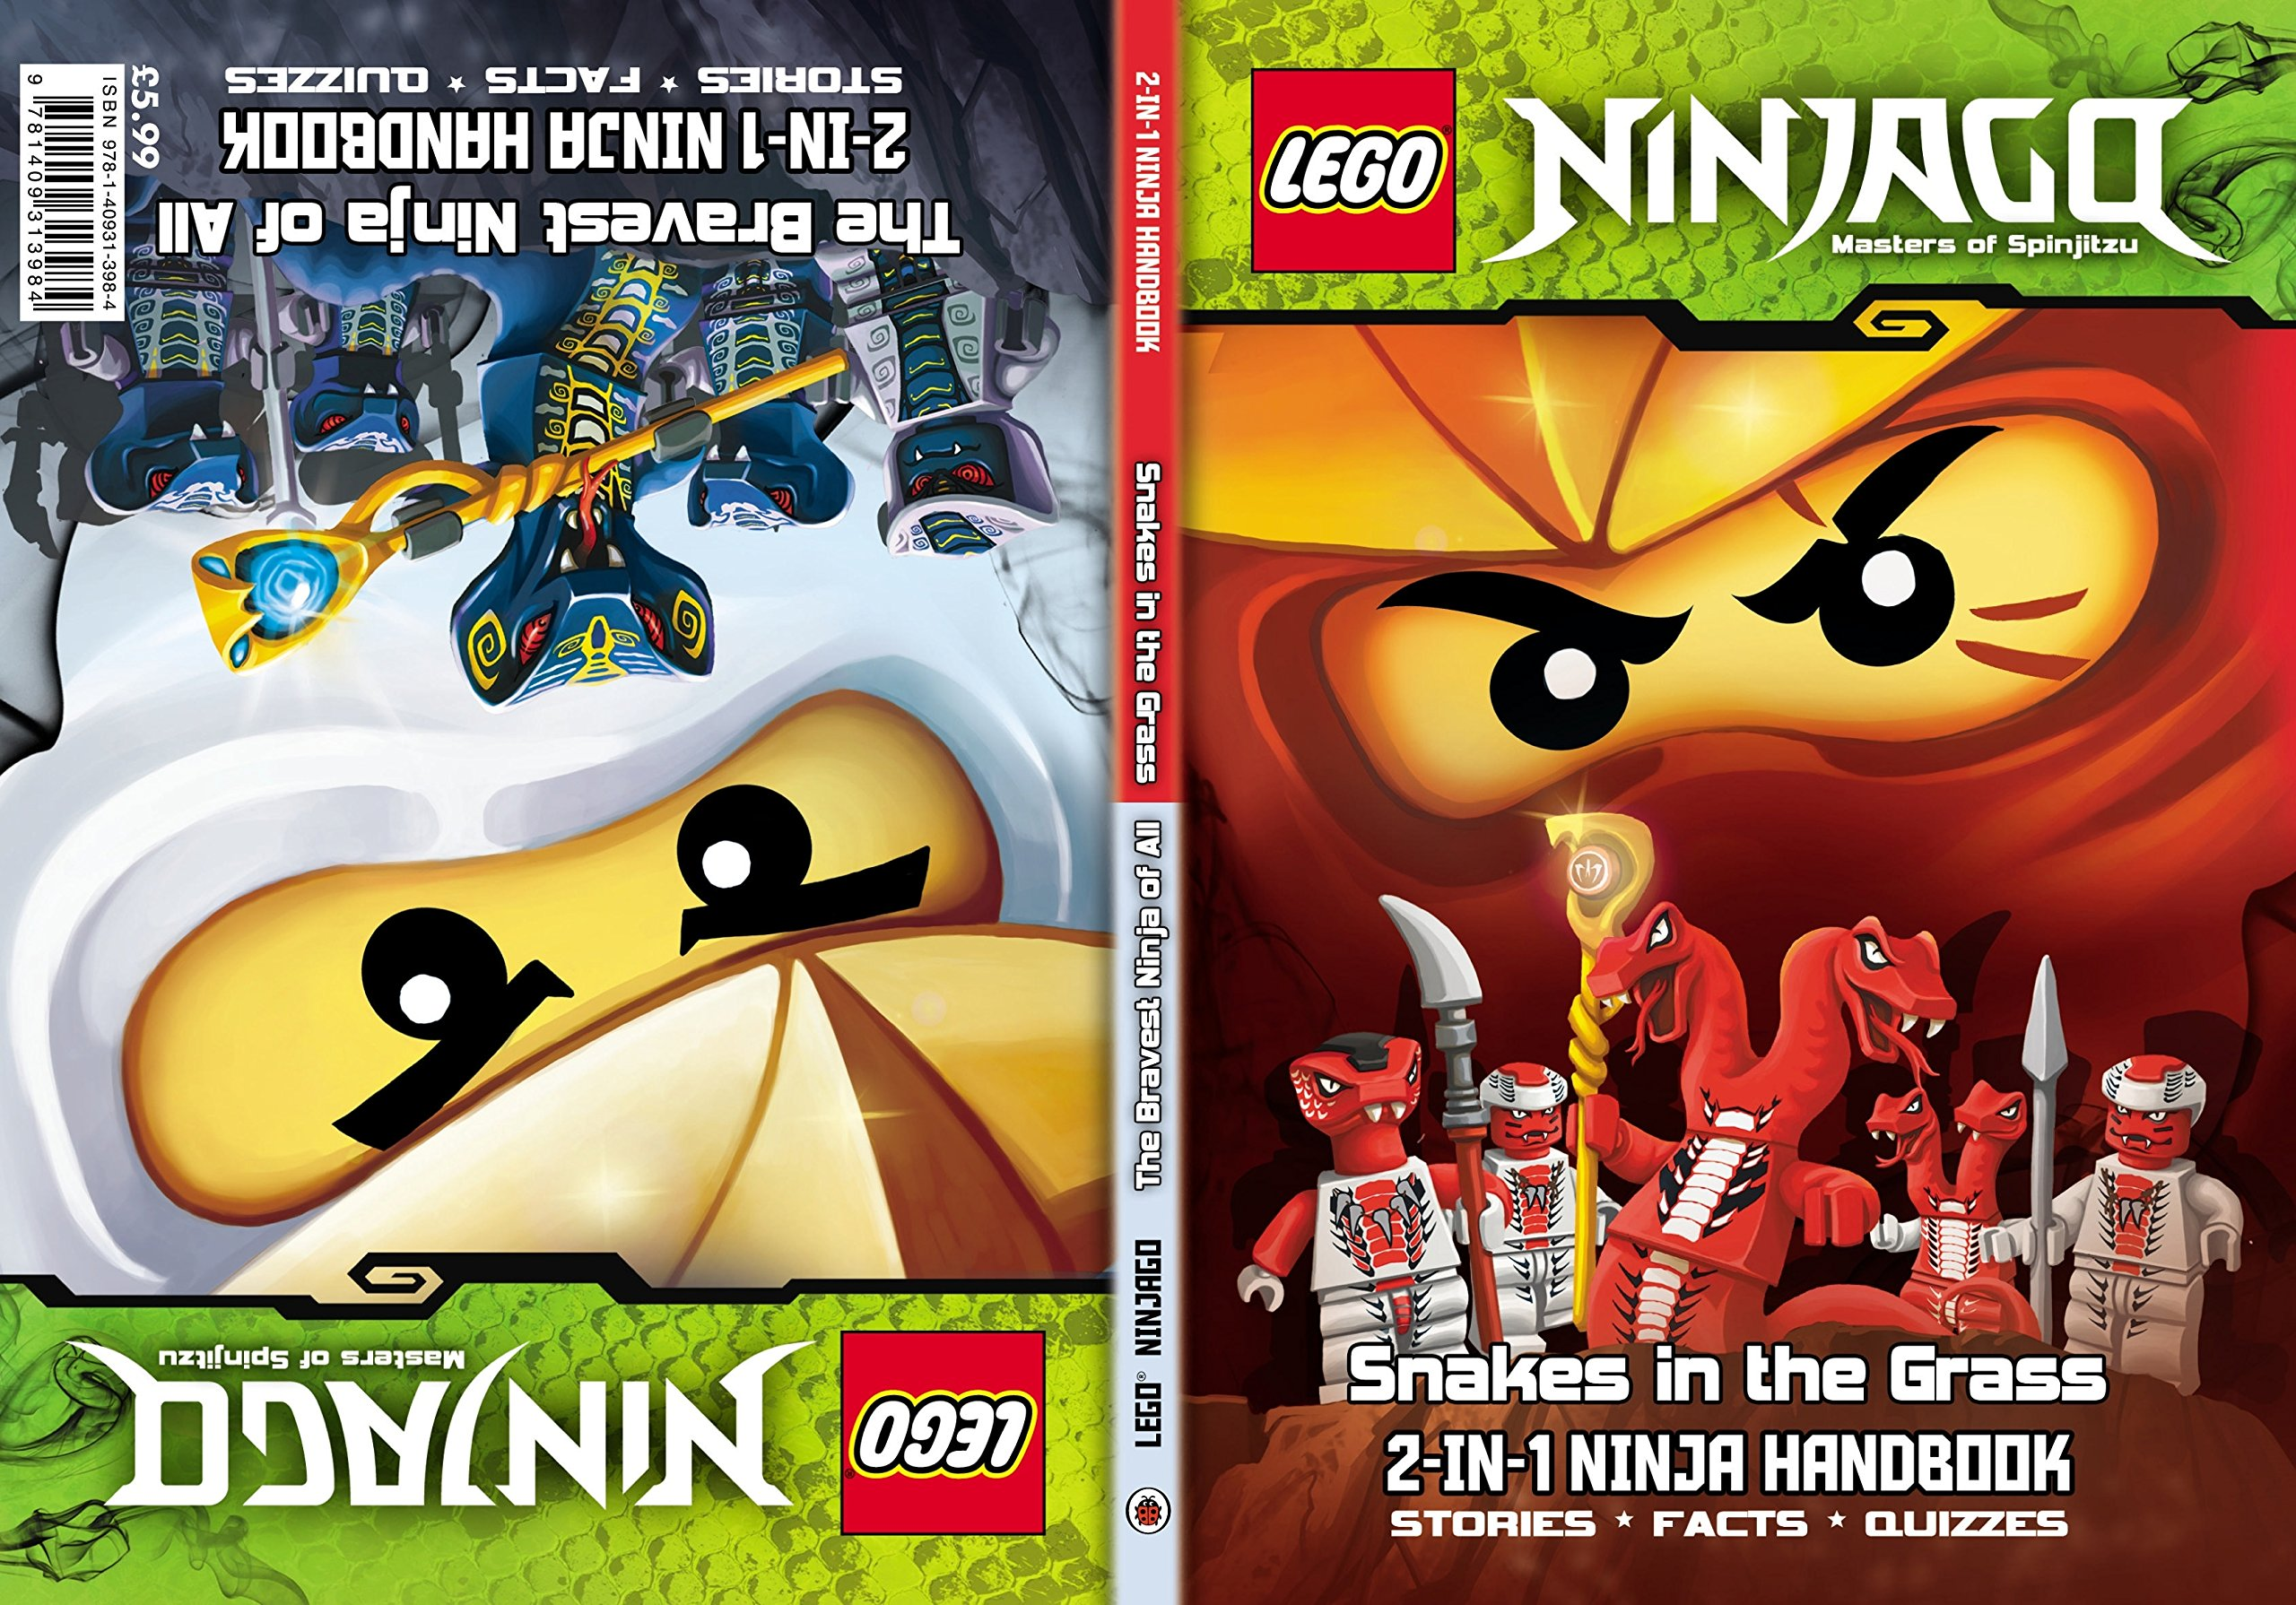 LEGO Ninjago 2-in-1 Ninja Handbook: The Bravest Ninja of All ...